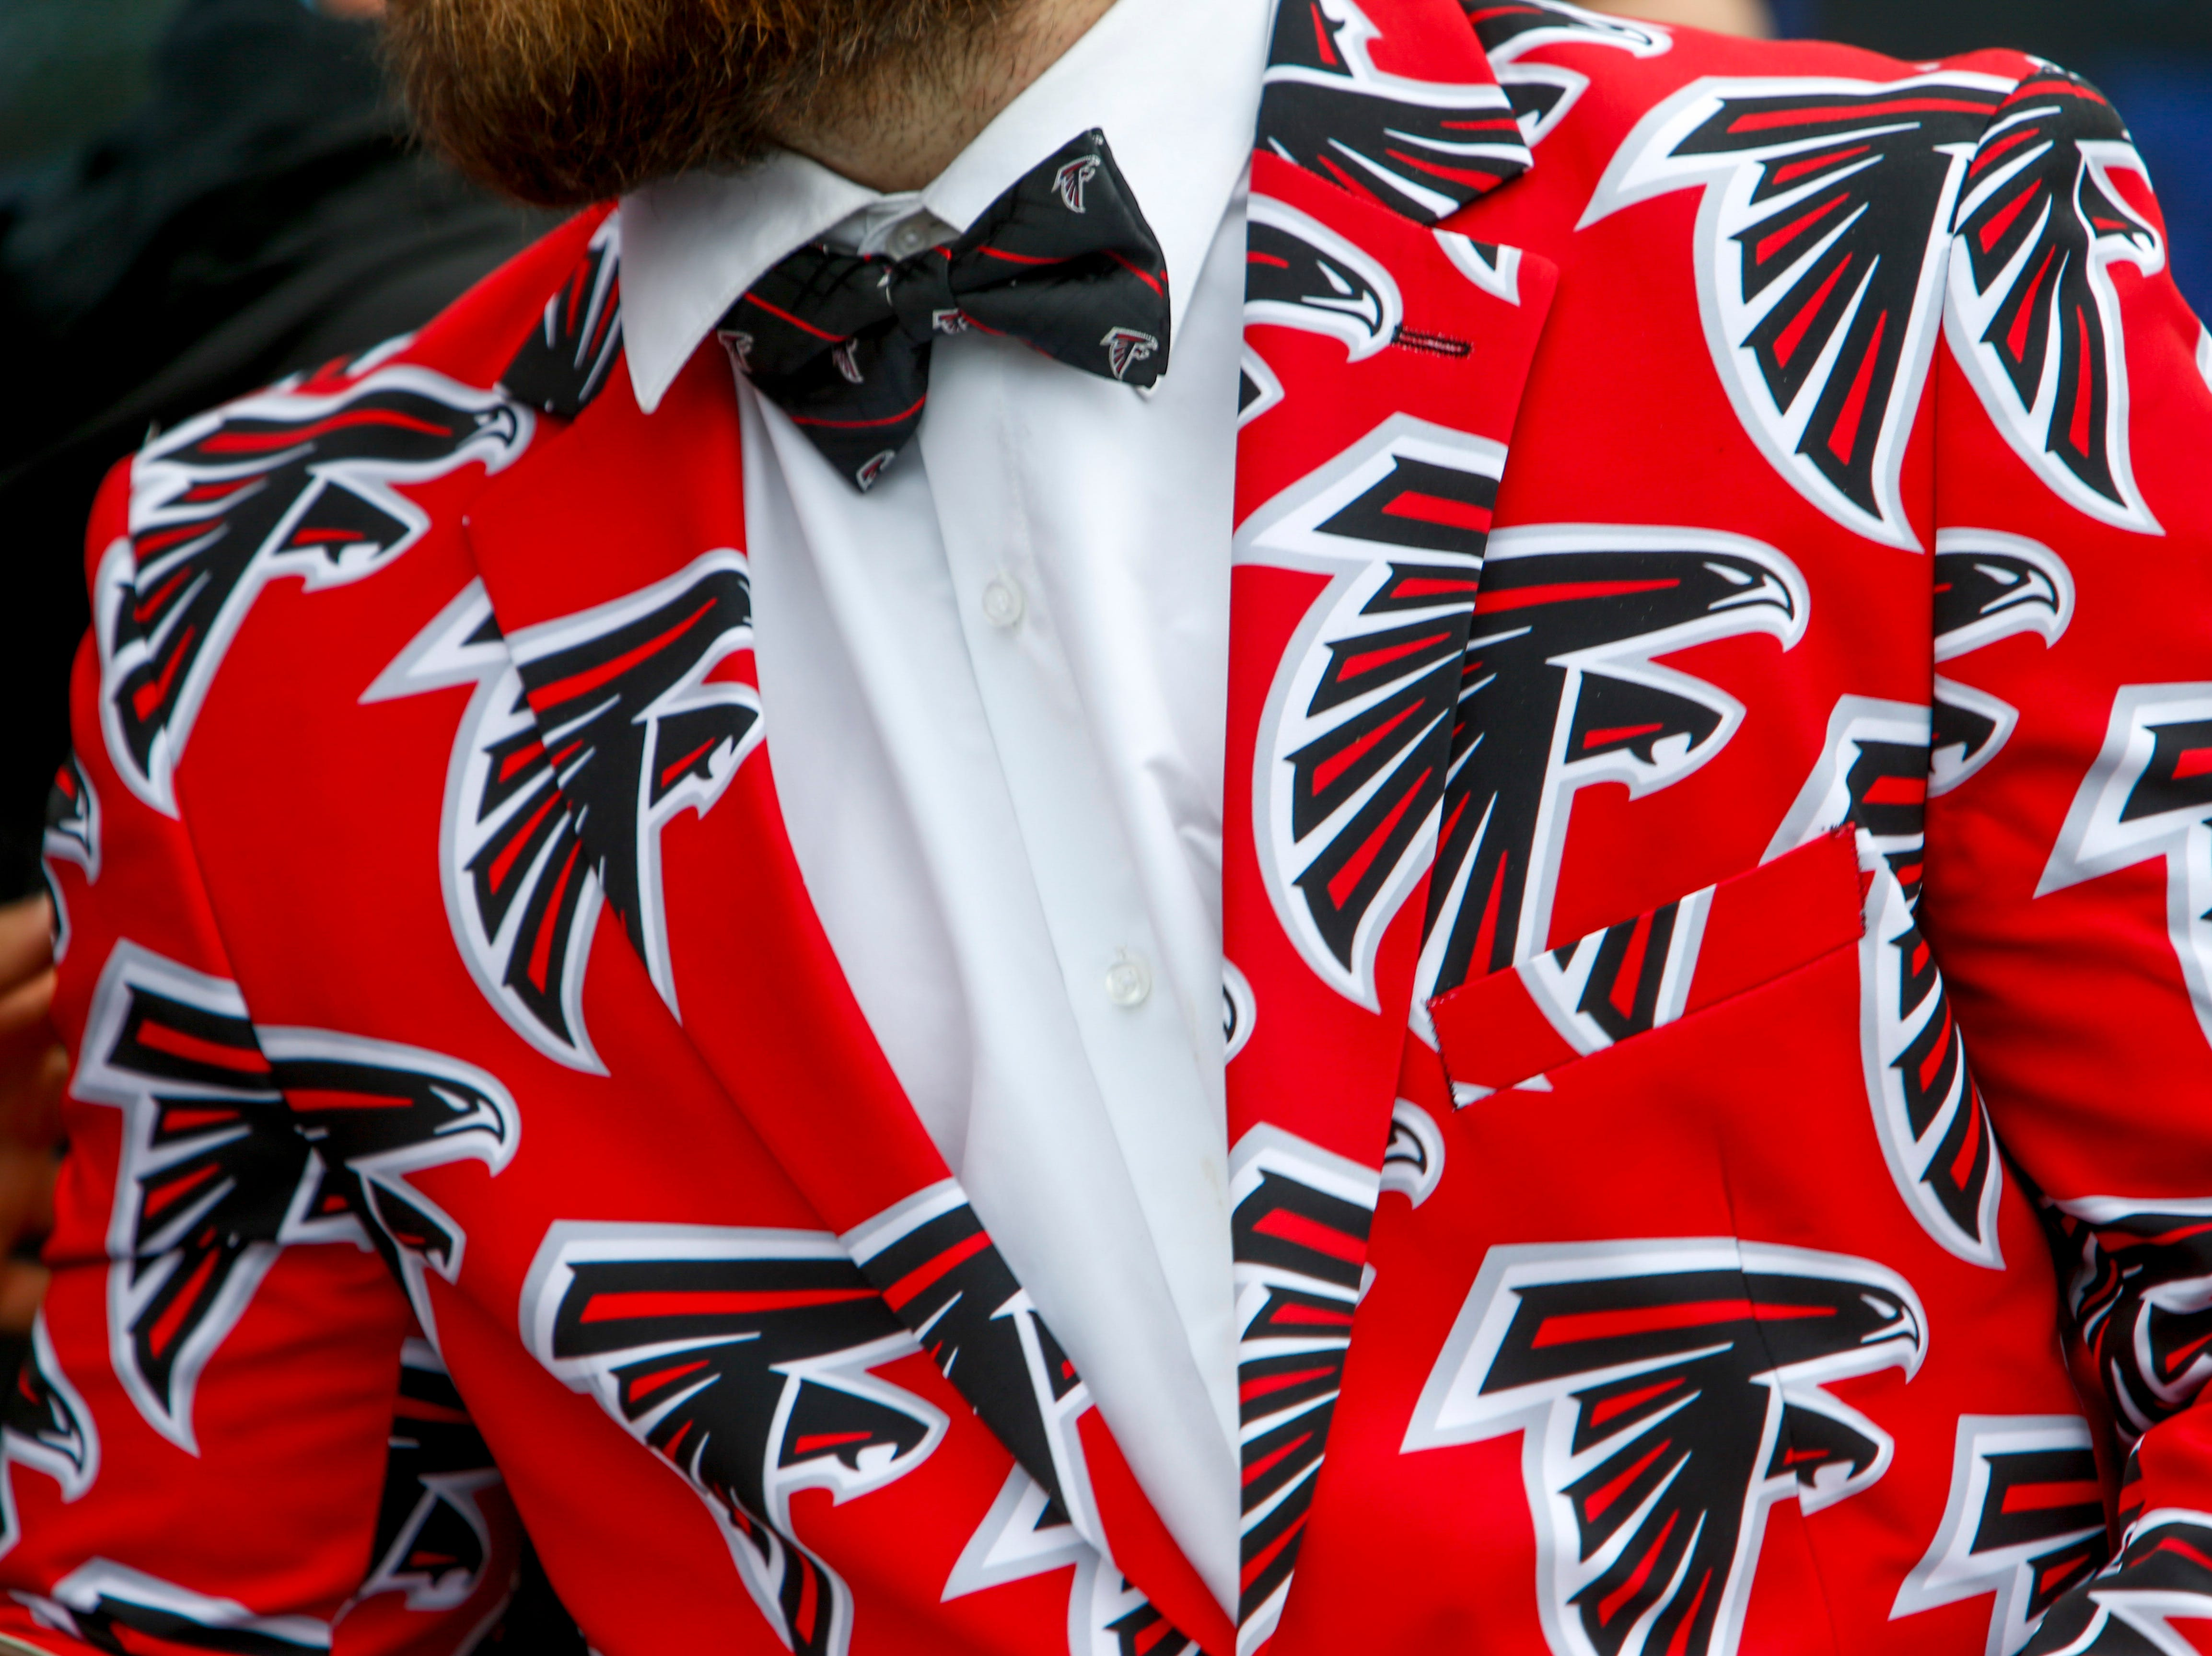 A fan struts up to meet Marcus Mariota with full Falcons flare during the NFL Draft Experience at Nissan Stadium in Nashville, Tenn., on Thursday, April 25, 2019.